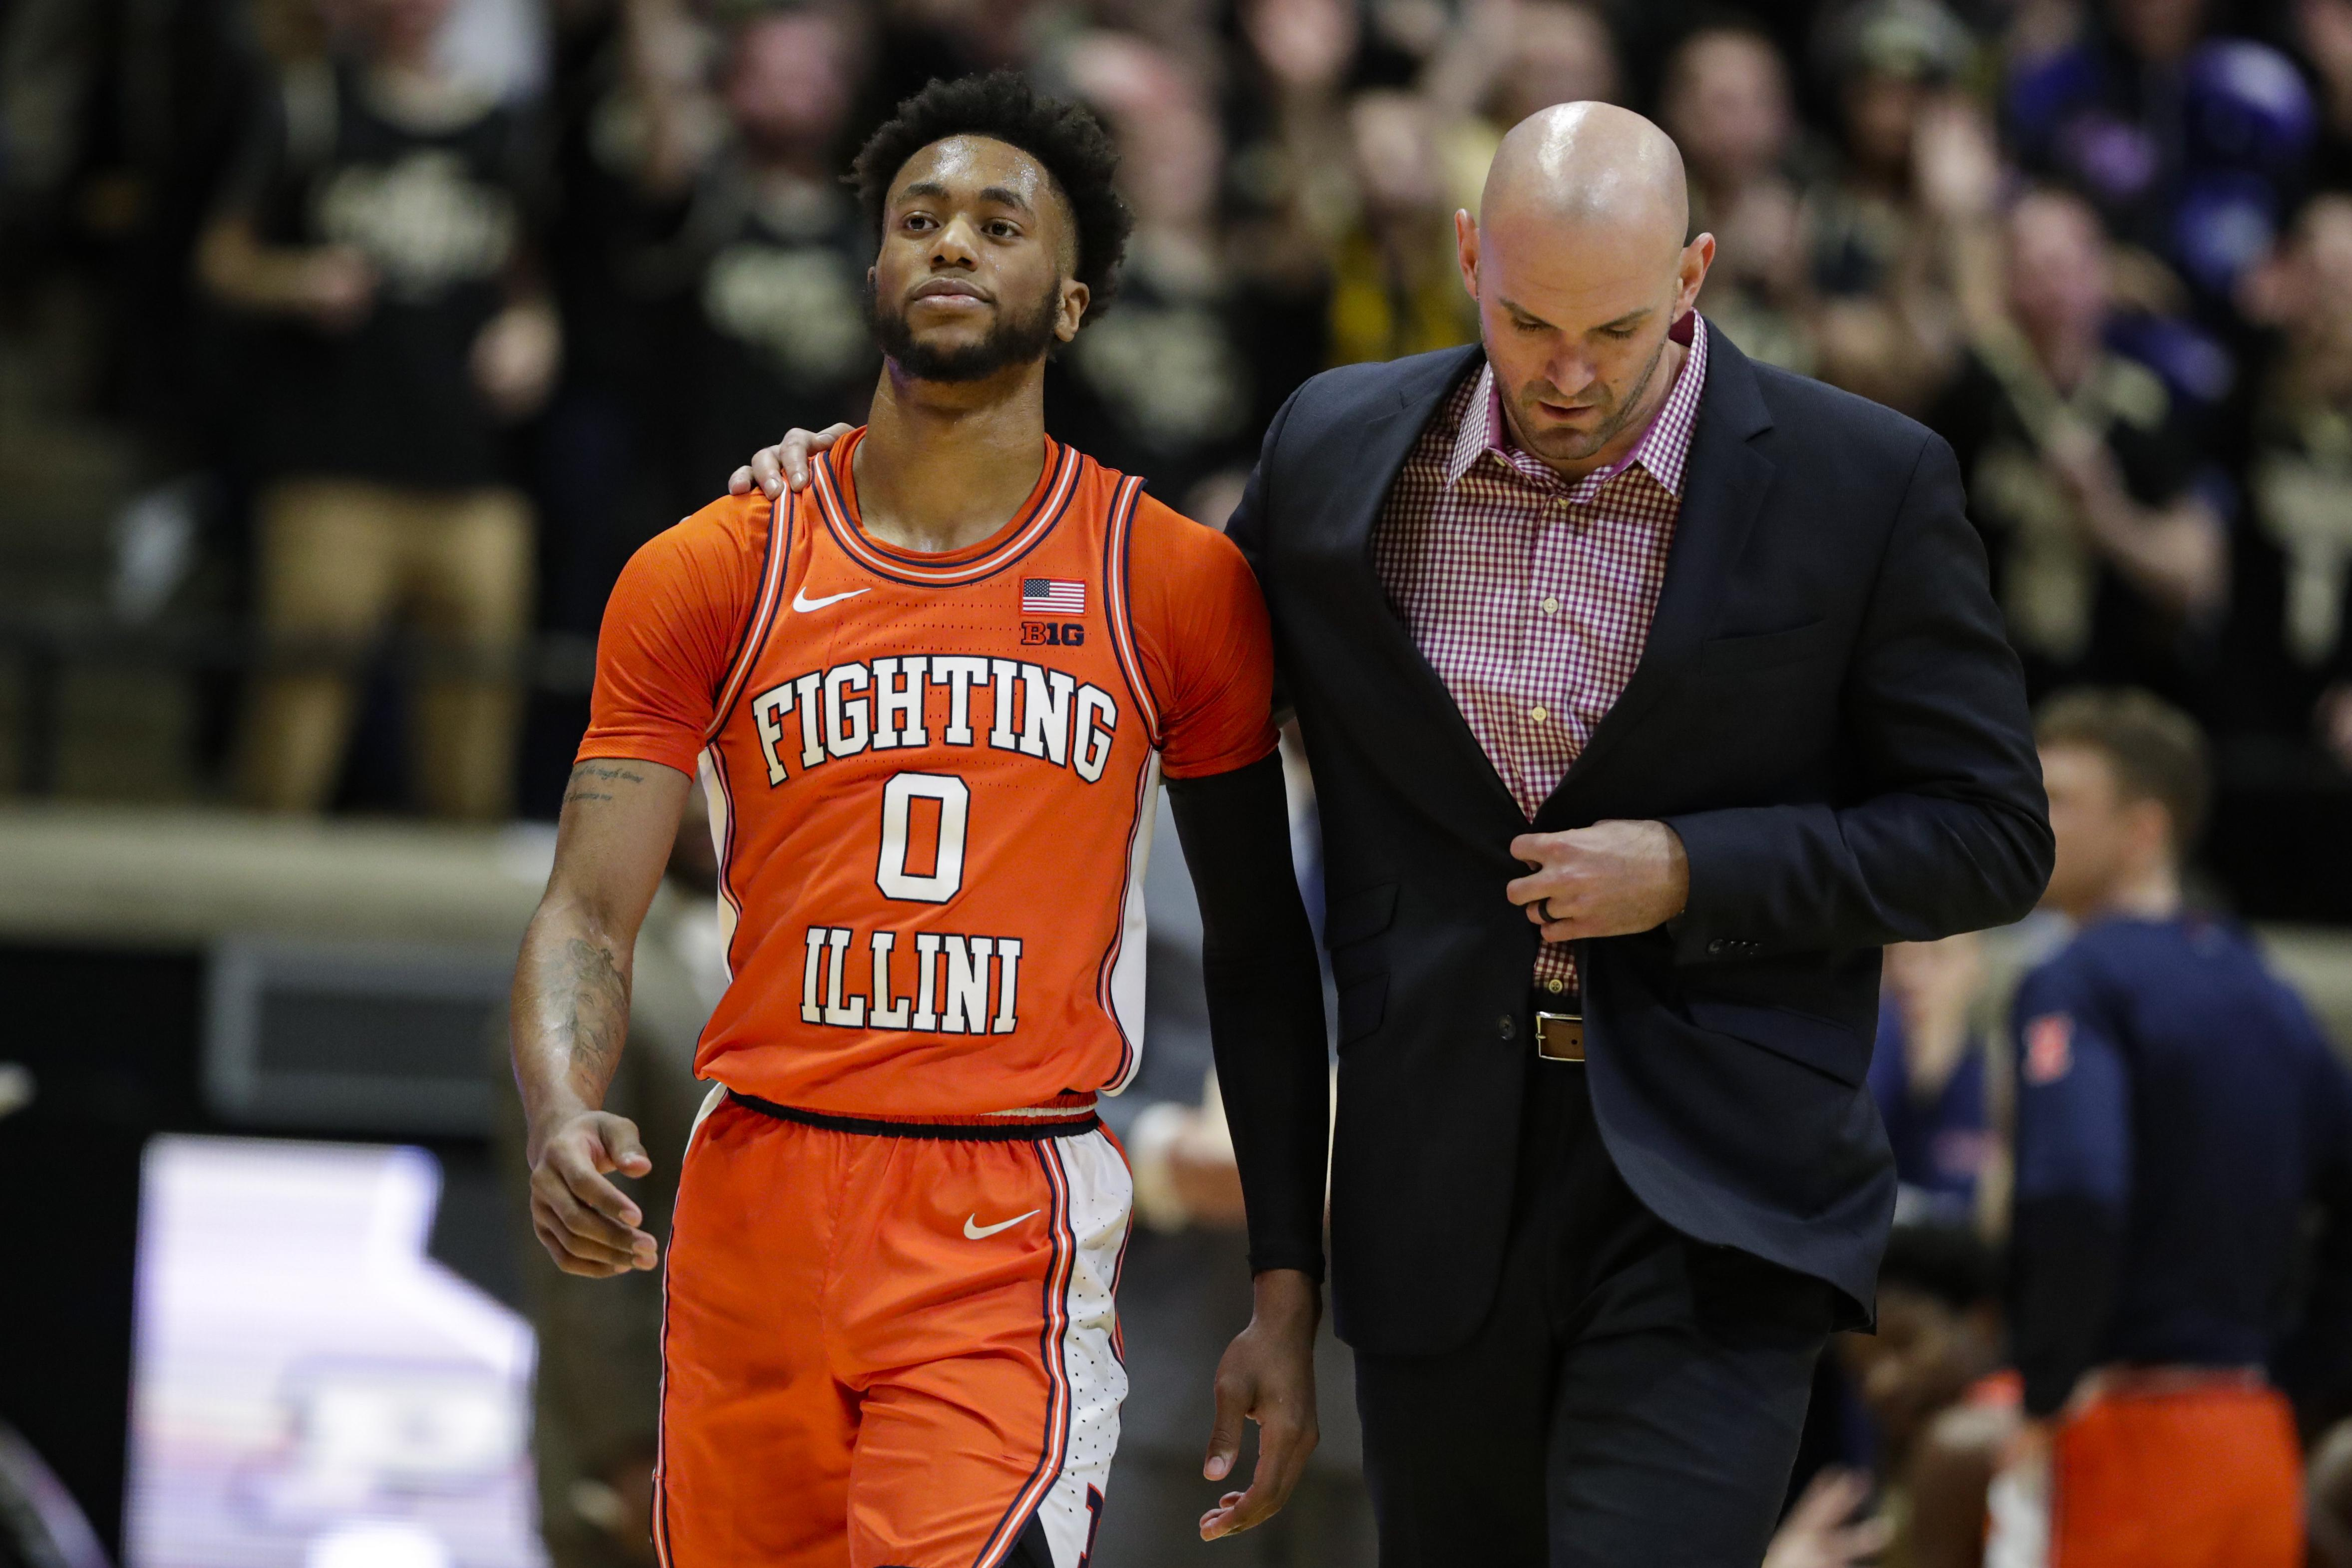 Illinois' Griffin suspended 2 games for stepping on Purdue player